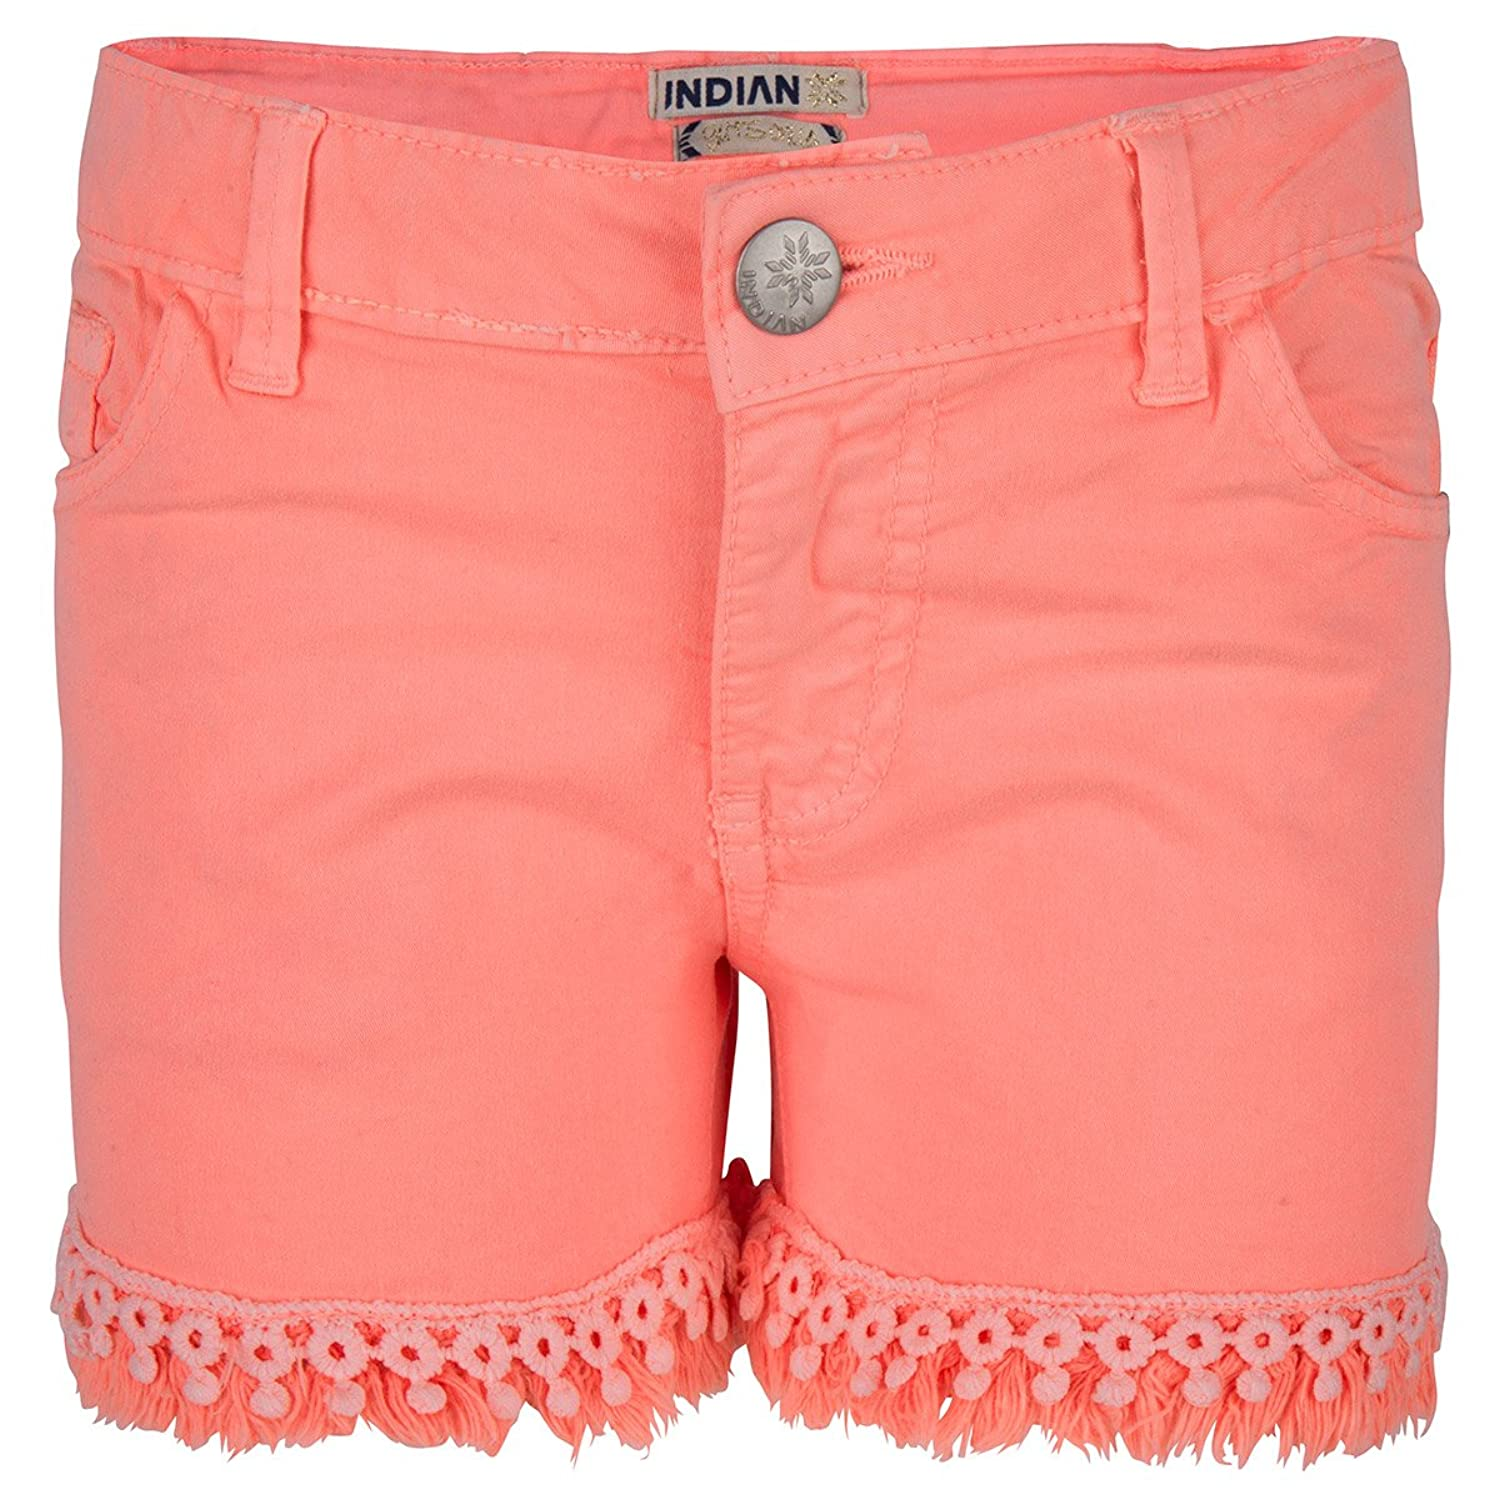 Indian Blue Jeans Fille shorts - 128